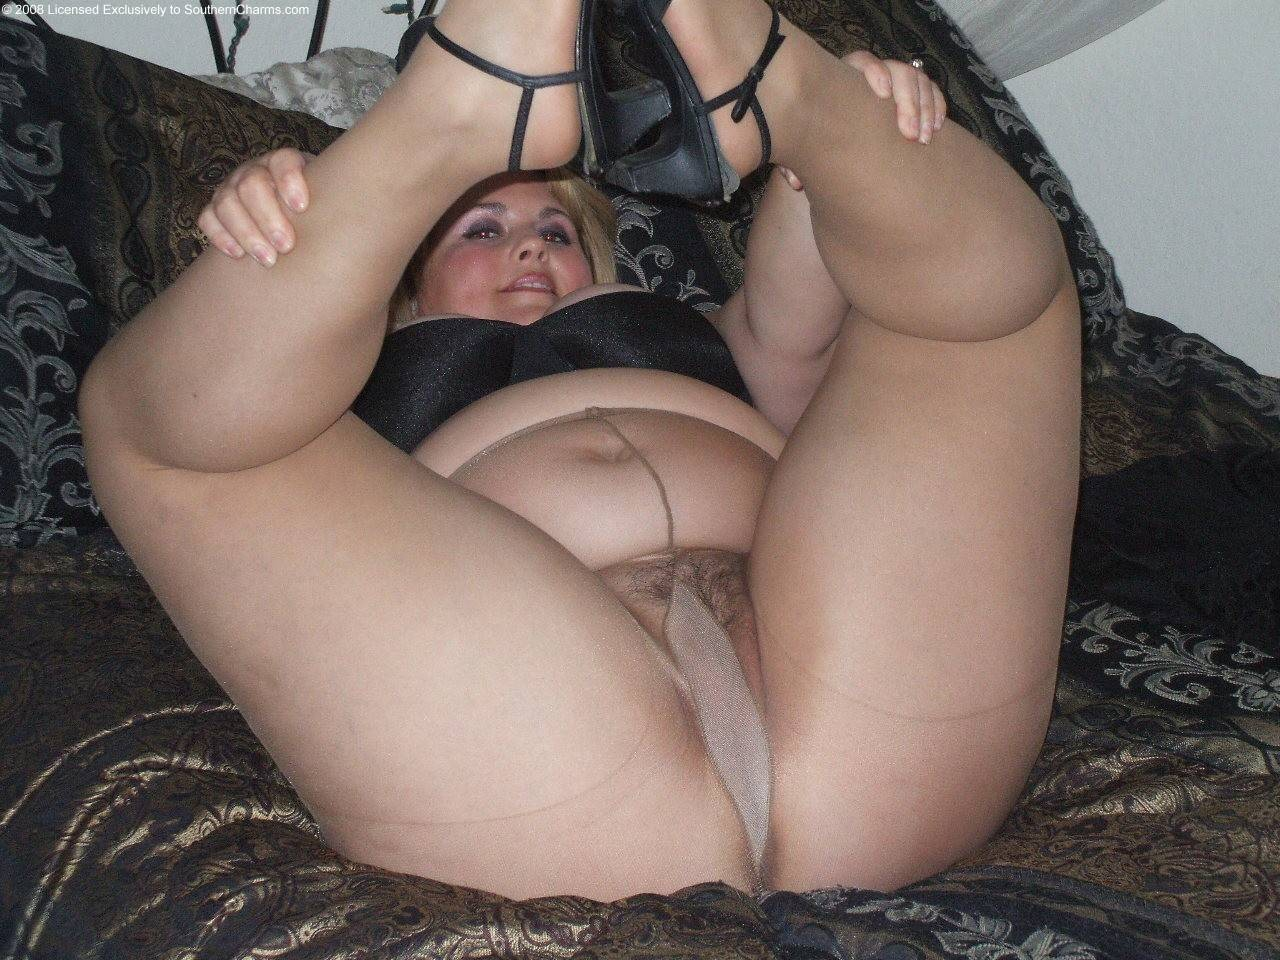 Interesting message amateur bbw pantyhose free porn pics